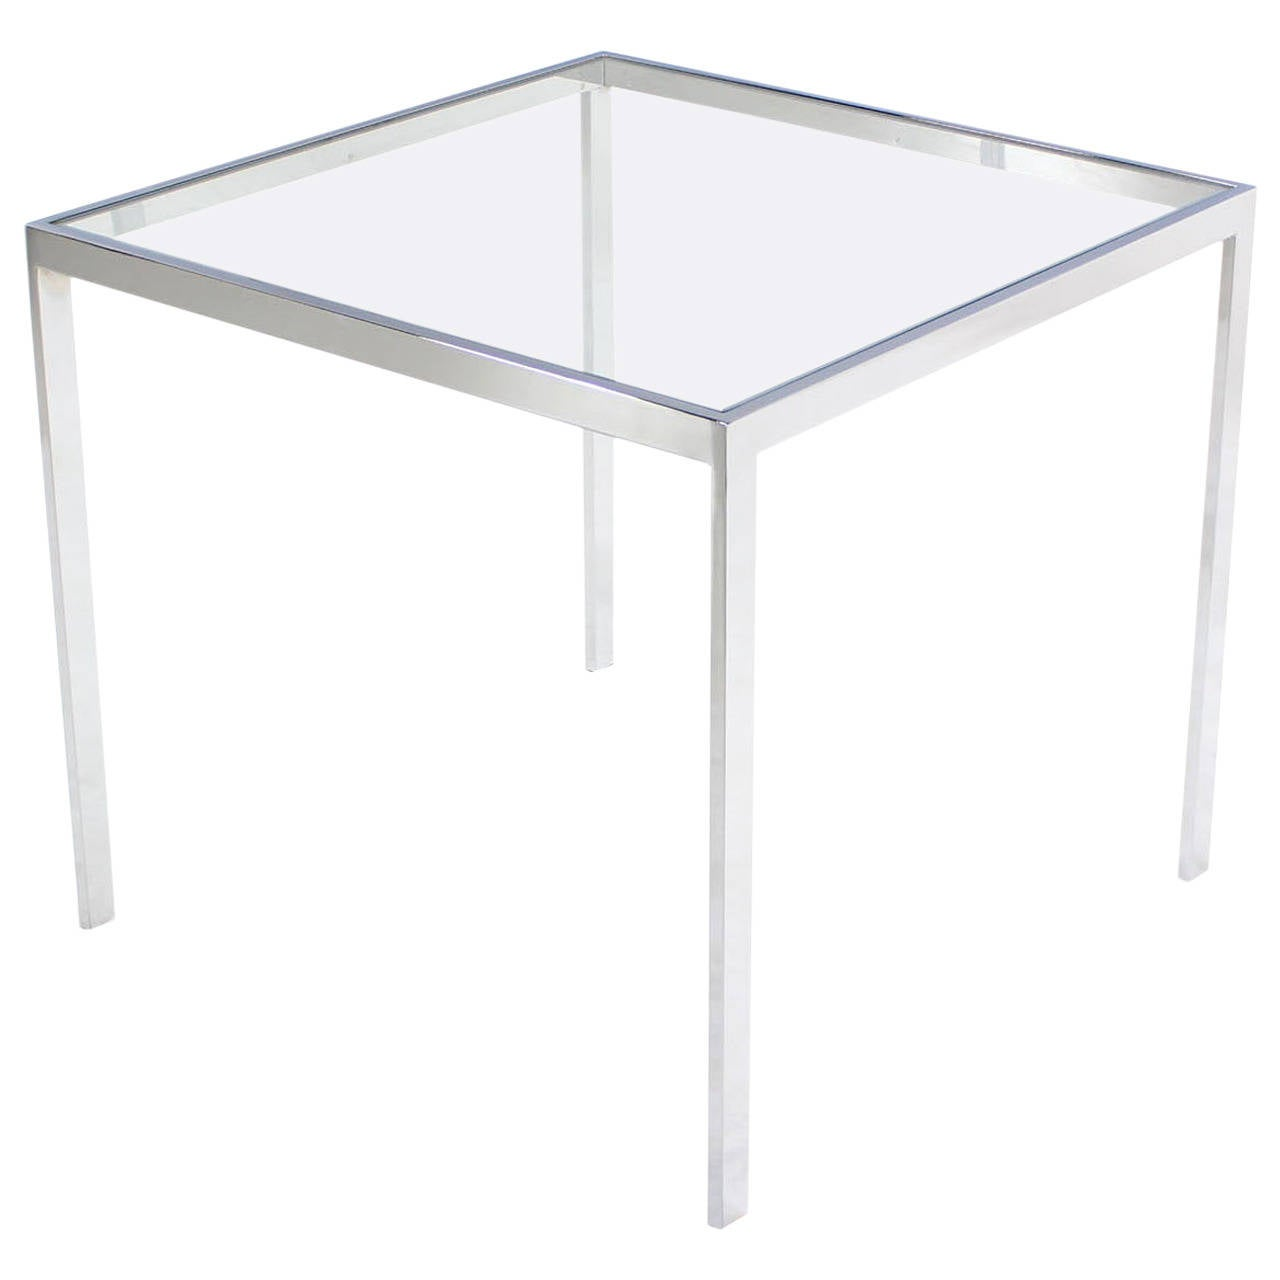 Square cube chrome and glass side table for sale at 1stdibs for Glass end tables